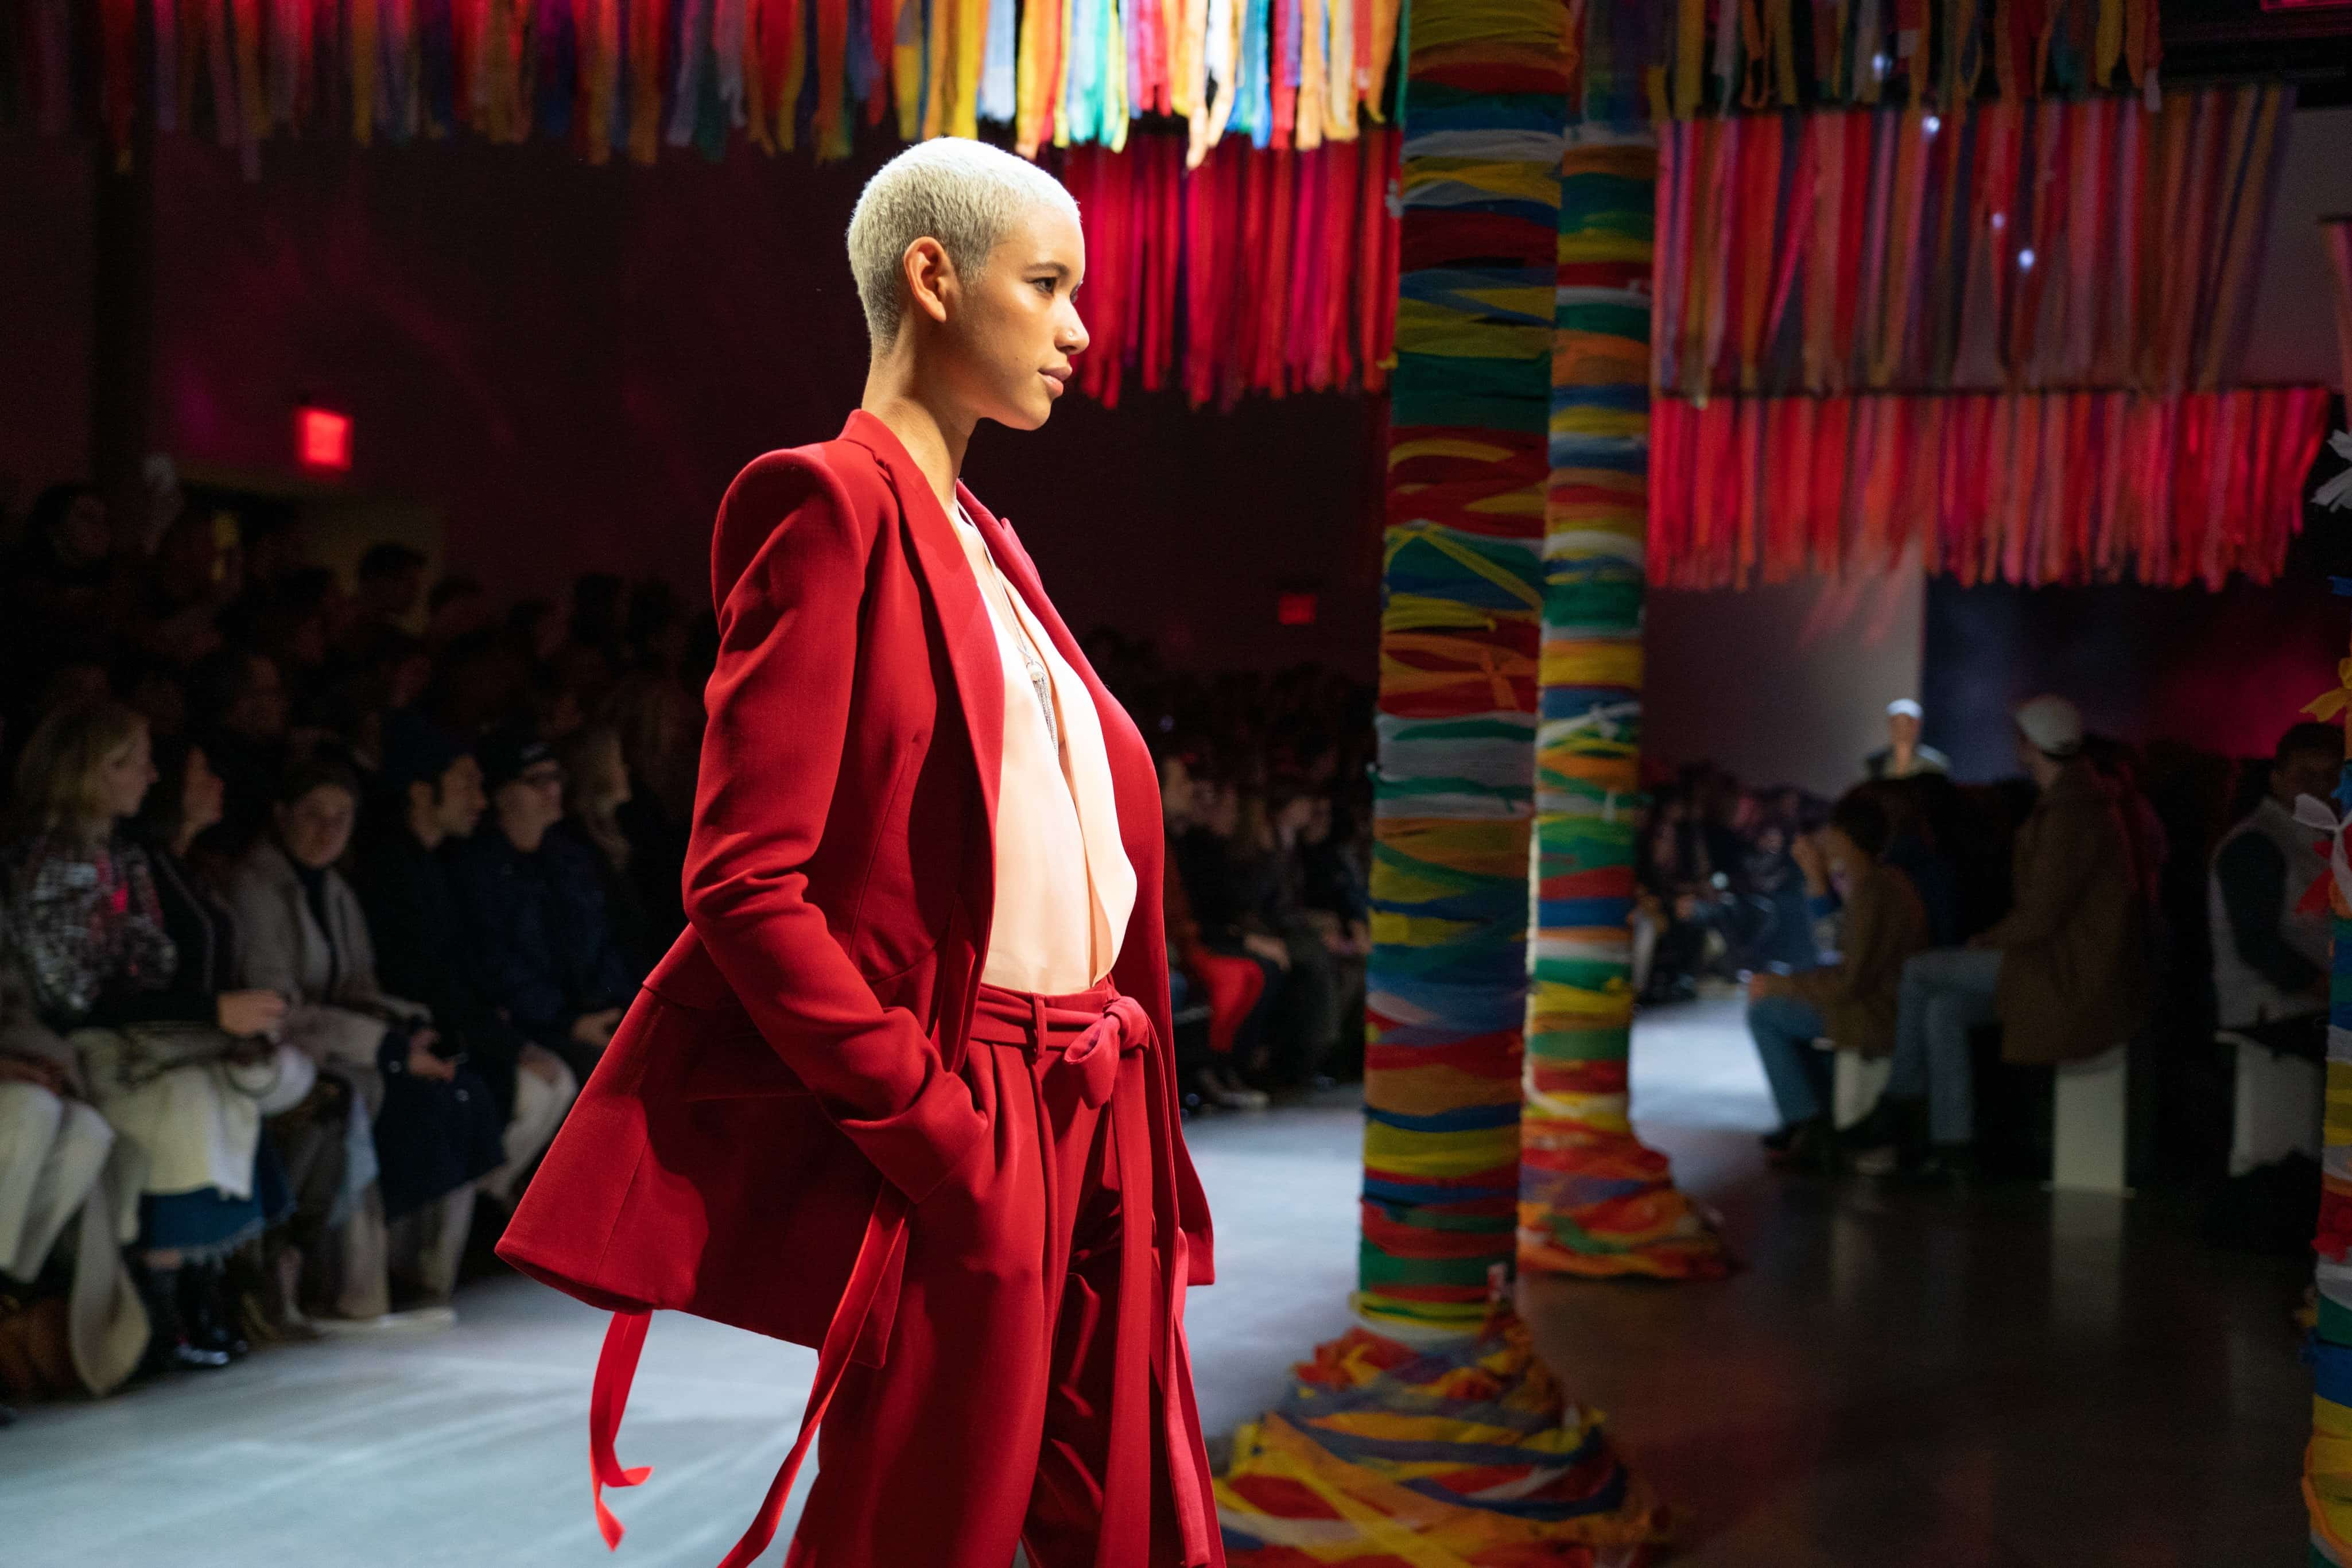 How to livestream NYFW, who won the LVMH prize, and more fashion news